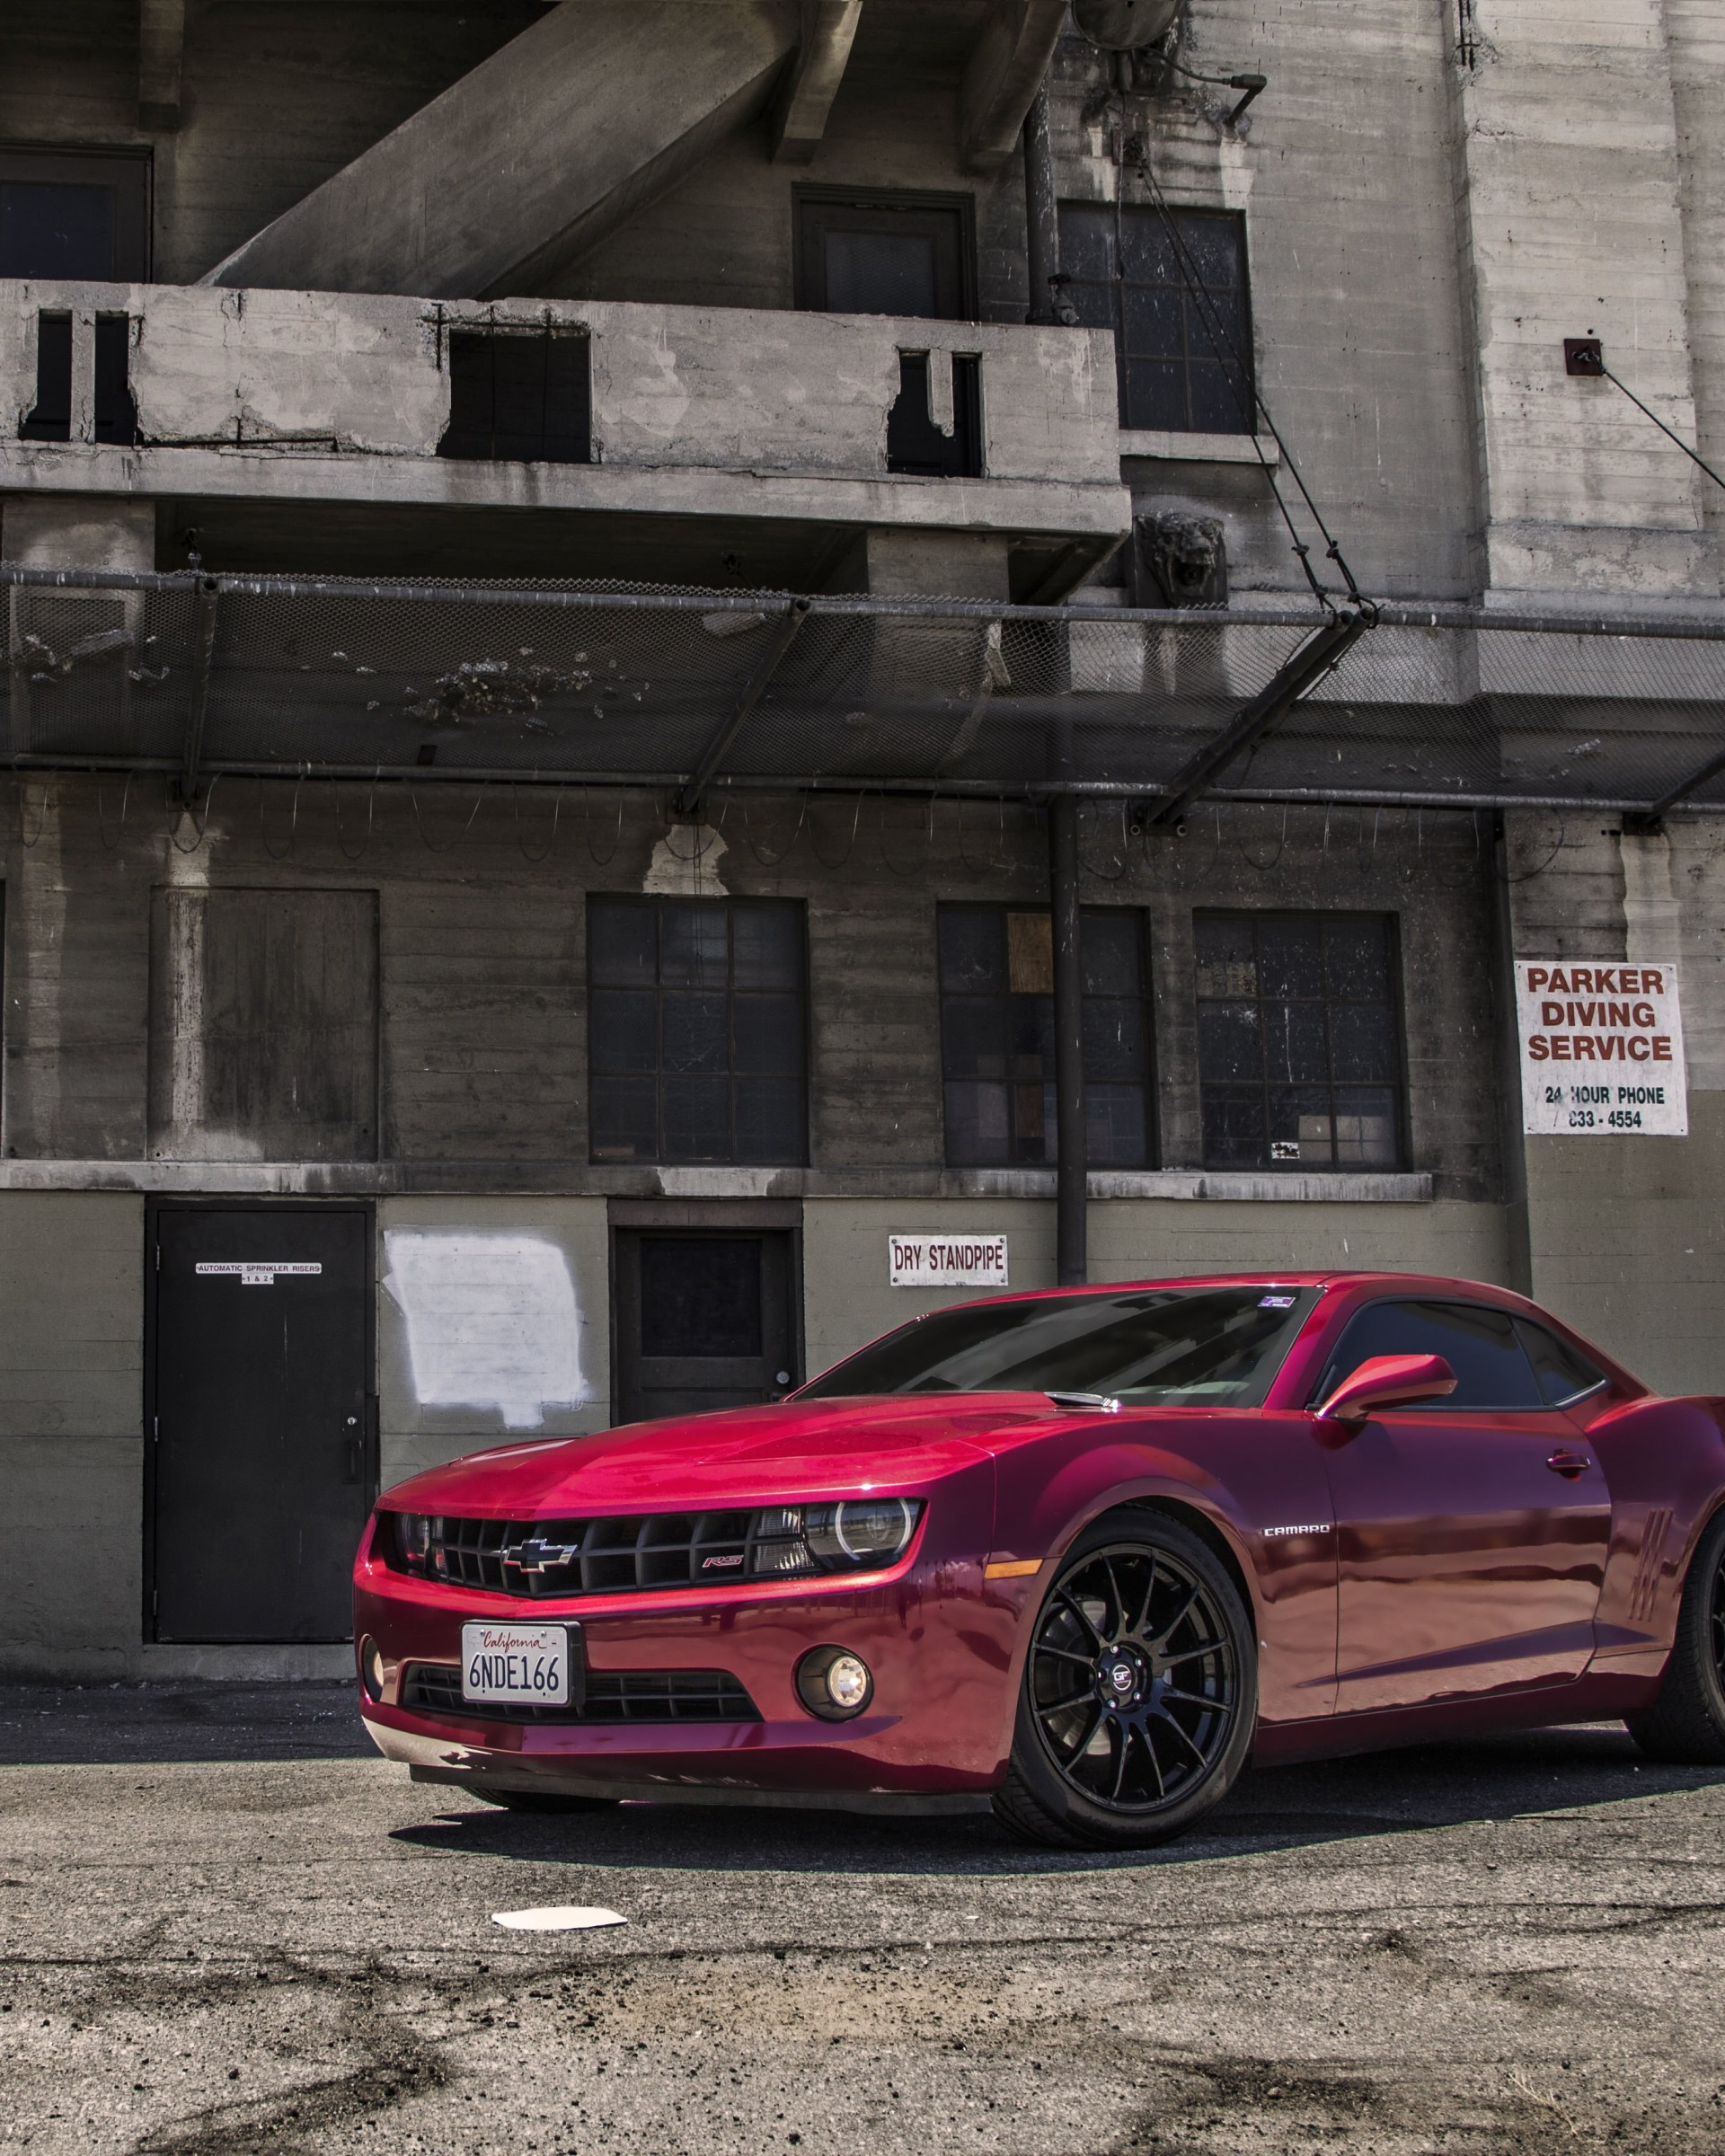 Red Chevrolet Camaro RS Wallpaper for Google Nexus 7